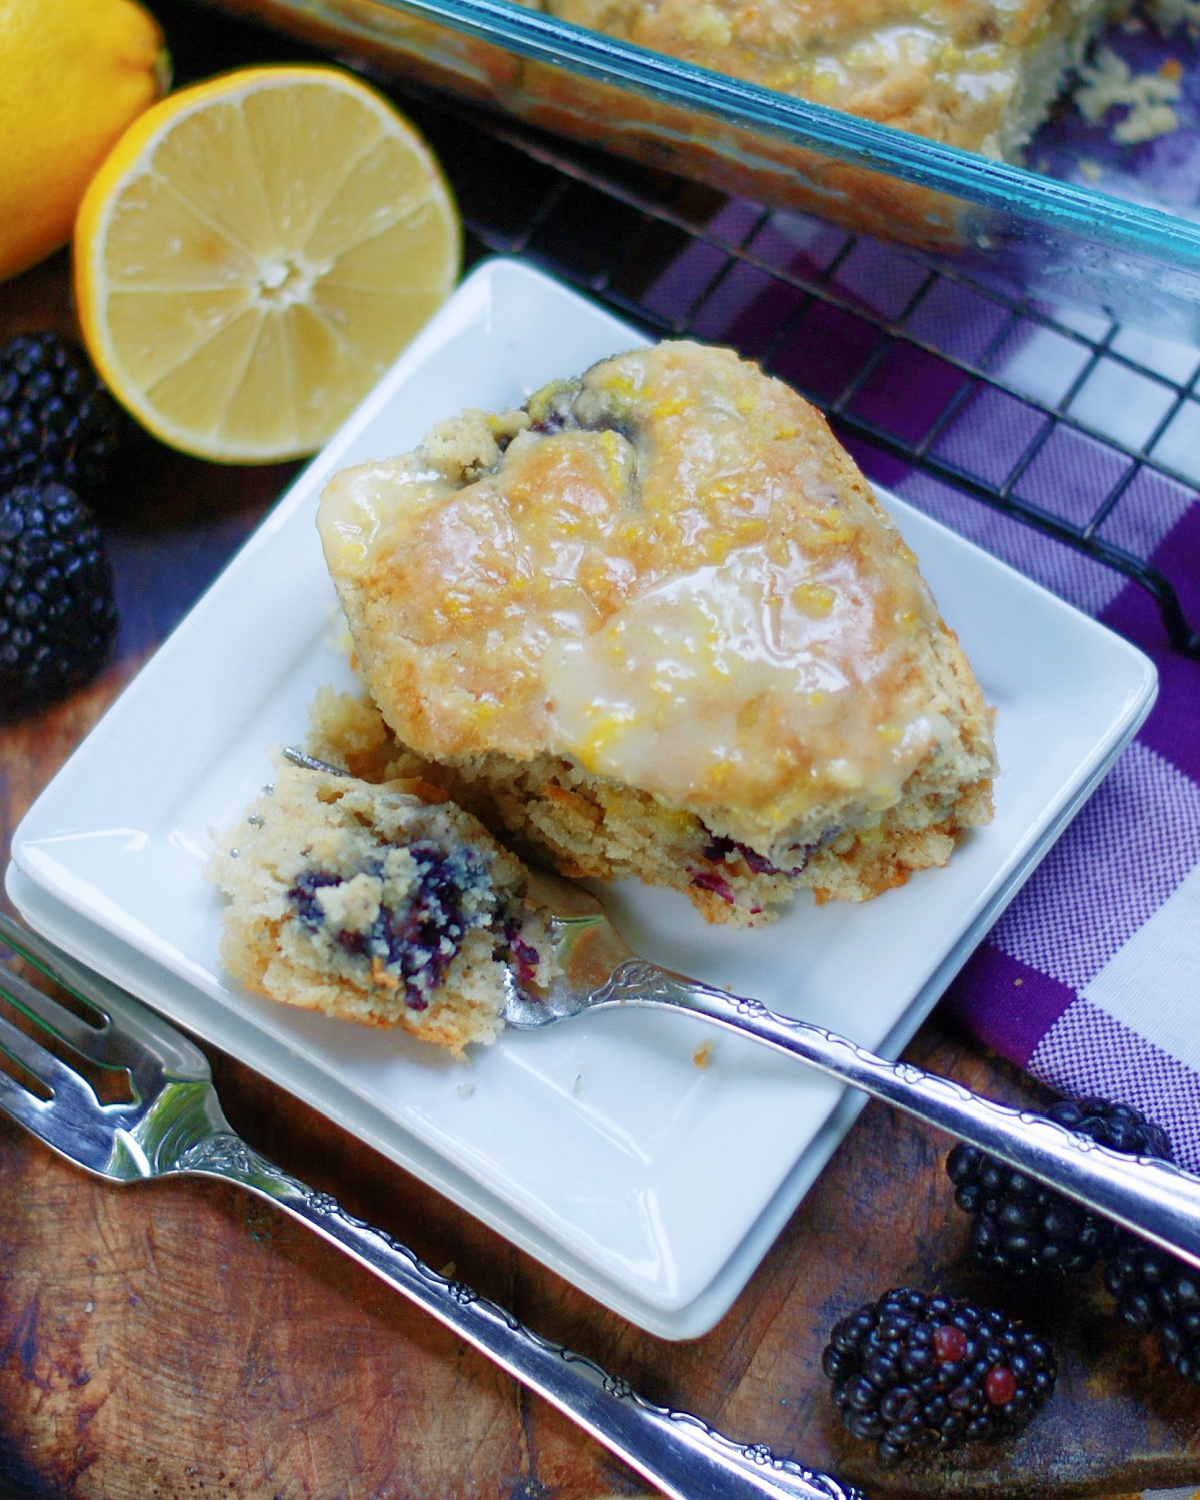 Warm, fluffy homemade buttermilk biscuits with blackberries and lemon glaze